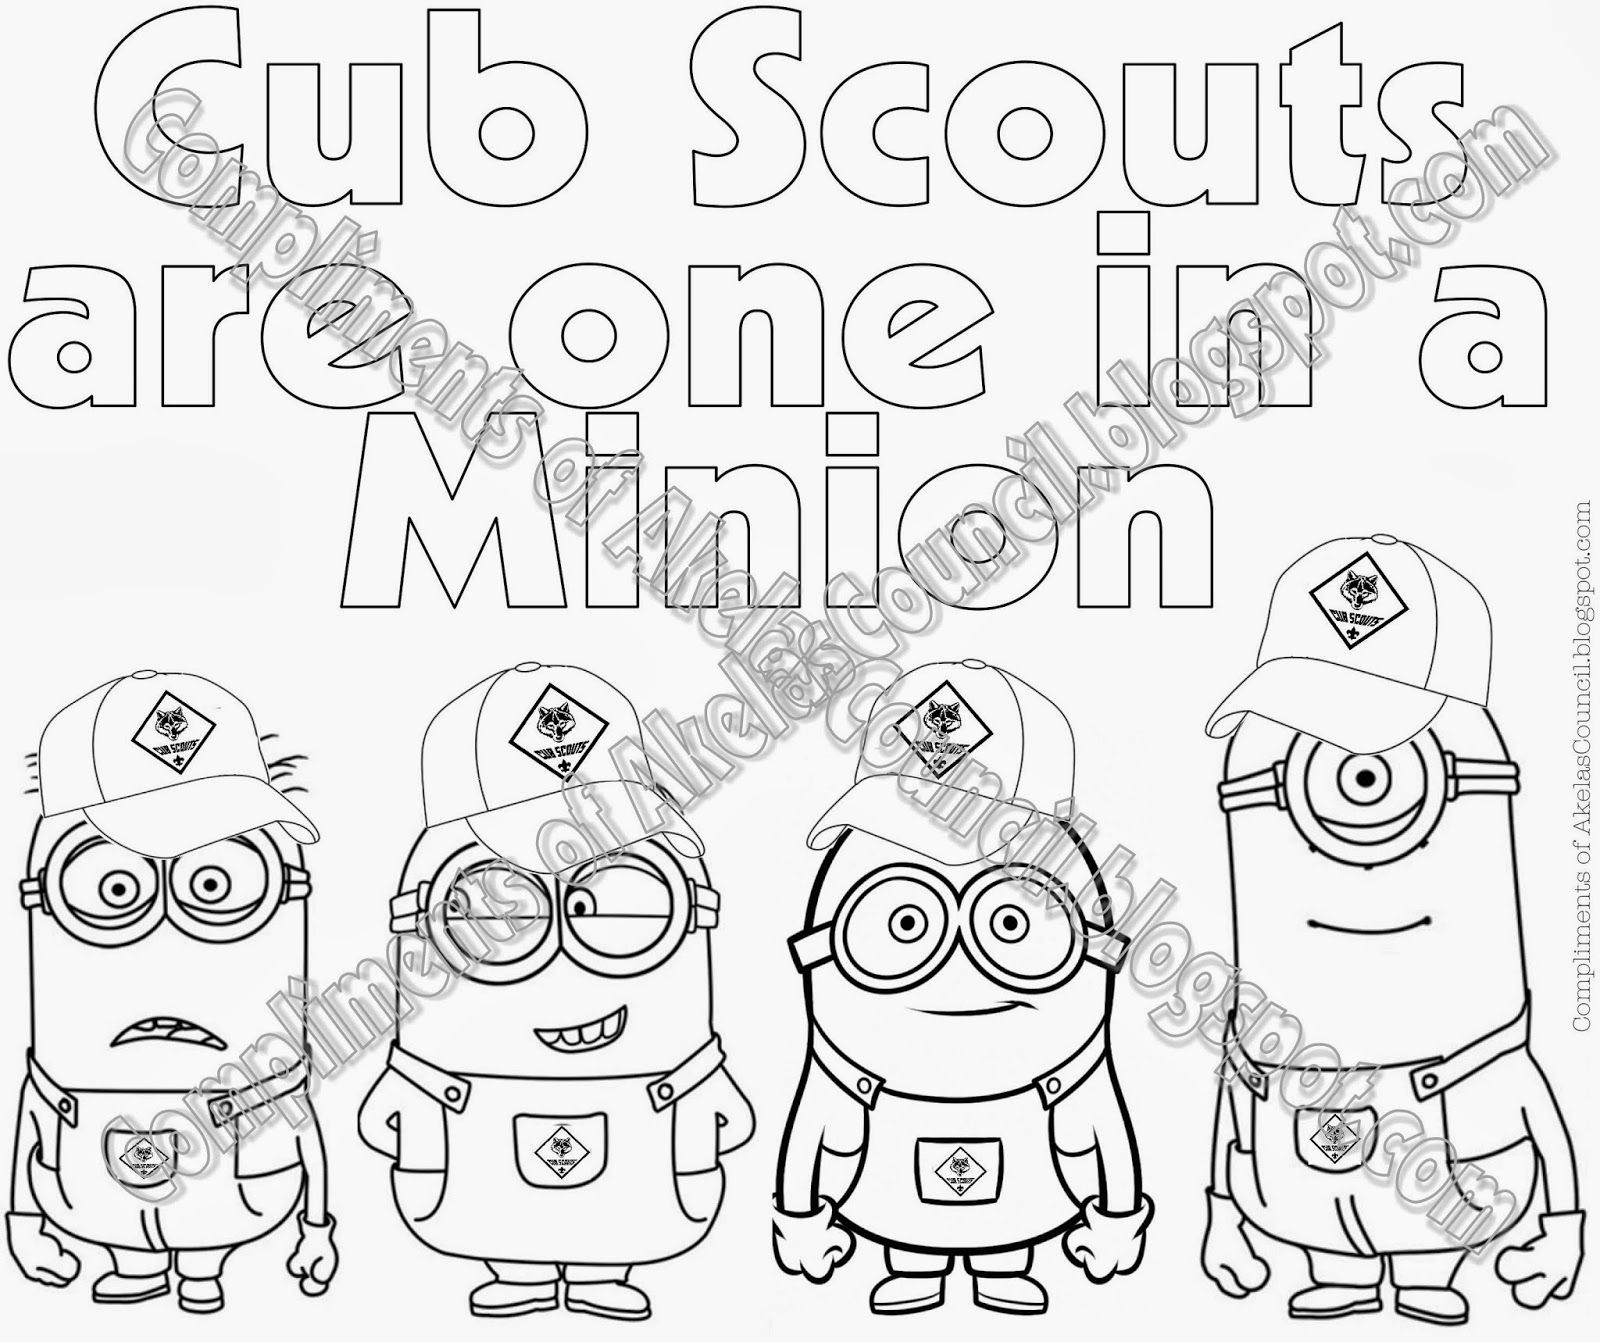 Cub Scout Minions PRINTABLE Coloring Page from Despicable Me - Great ...